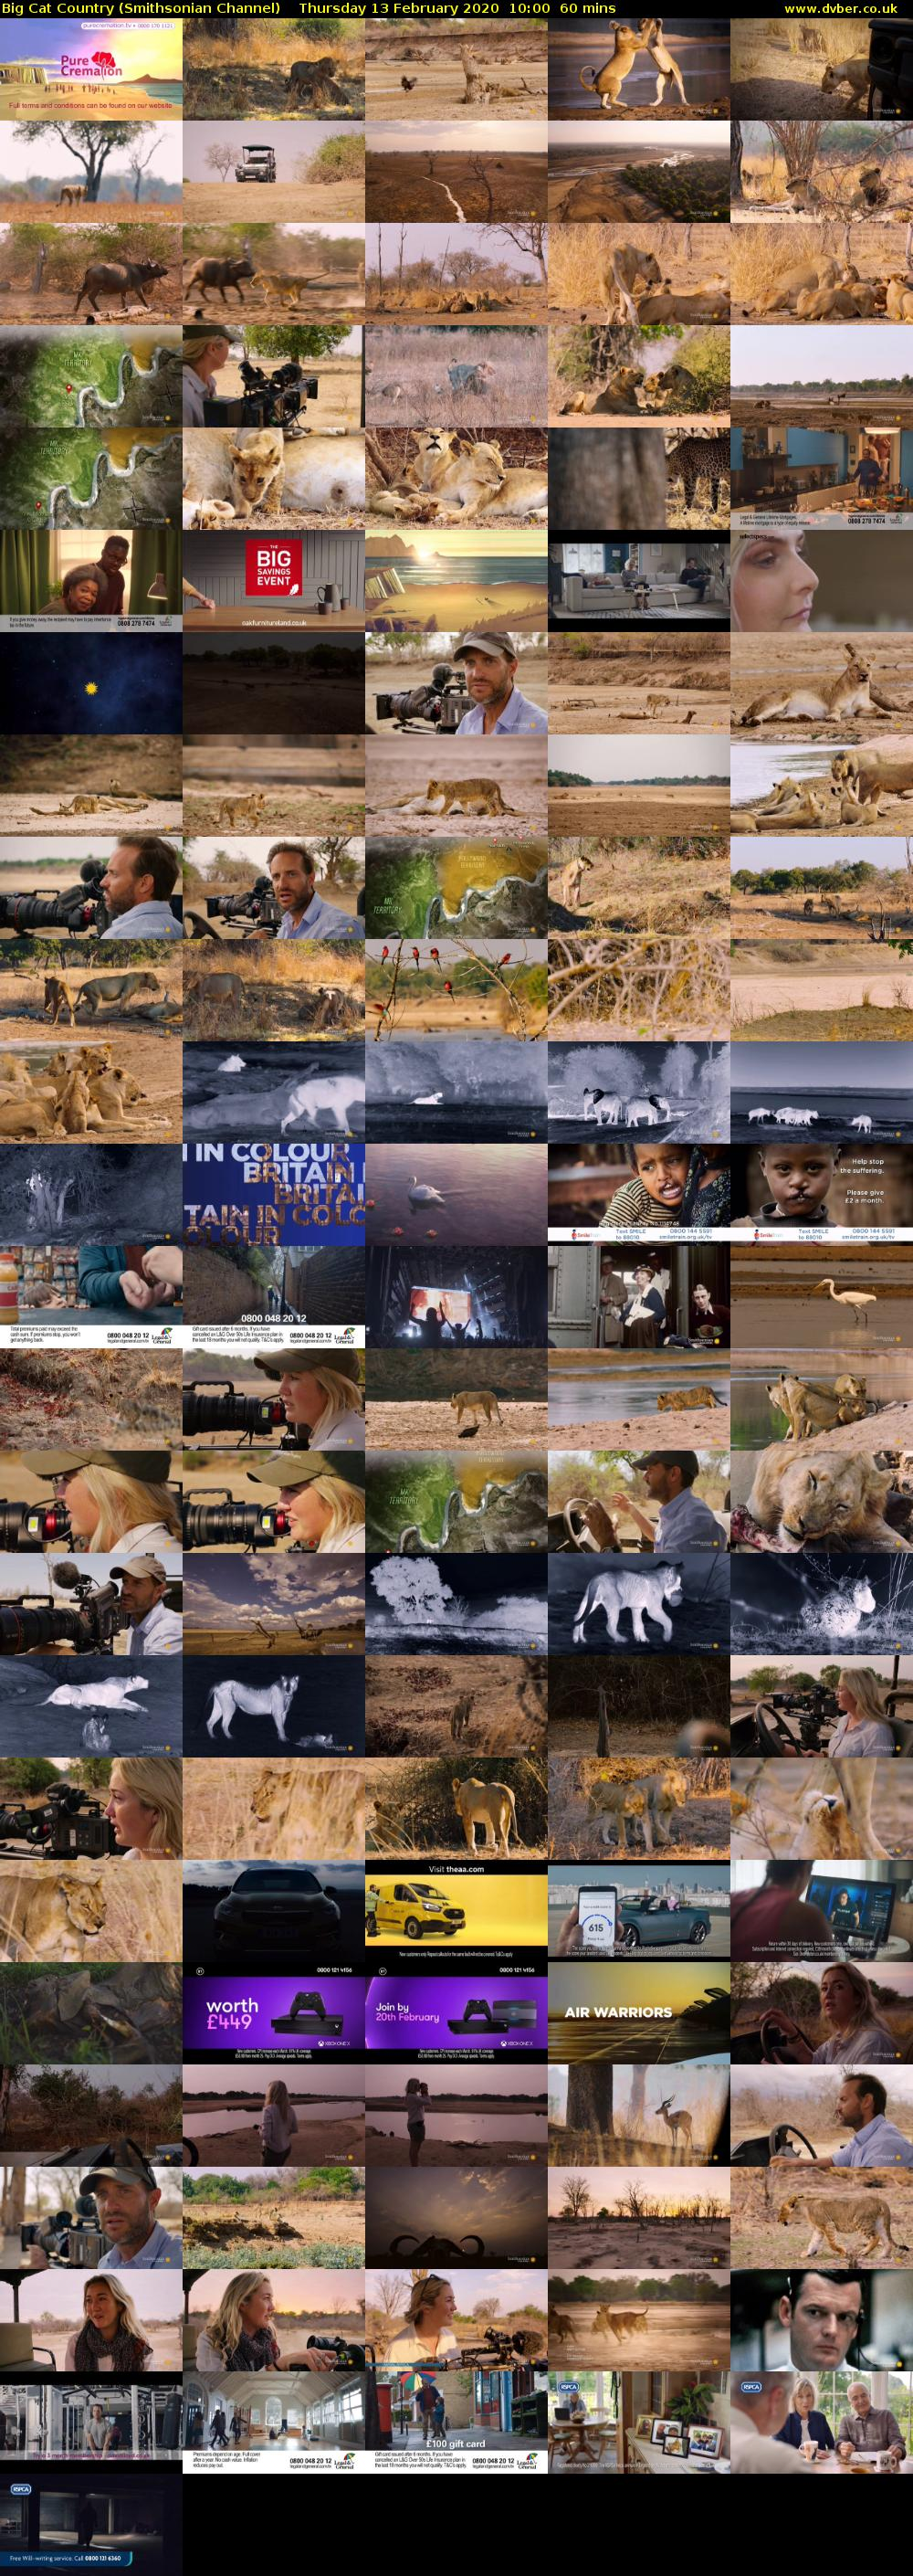 Big Cat Country (Smithsonian Channel) Thursday 13 February 2020 10:00 - 11:00